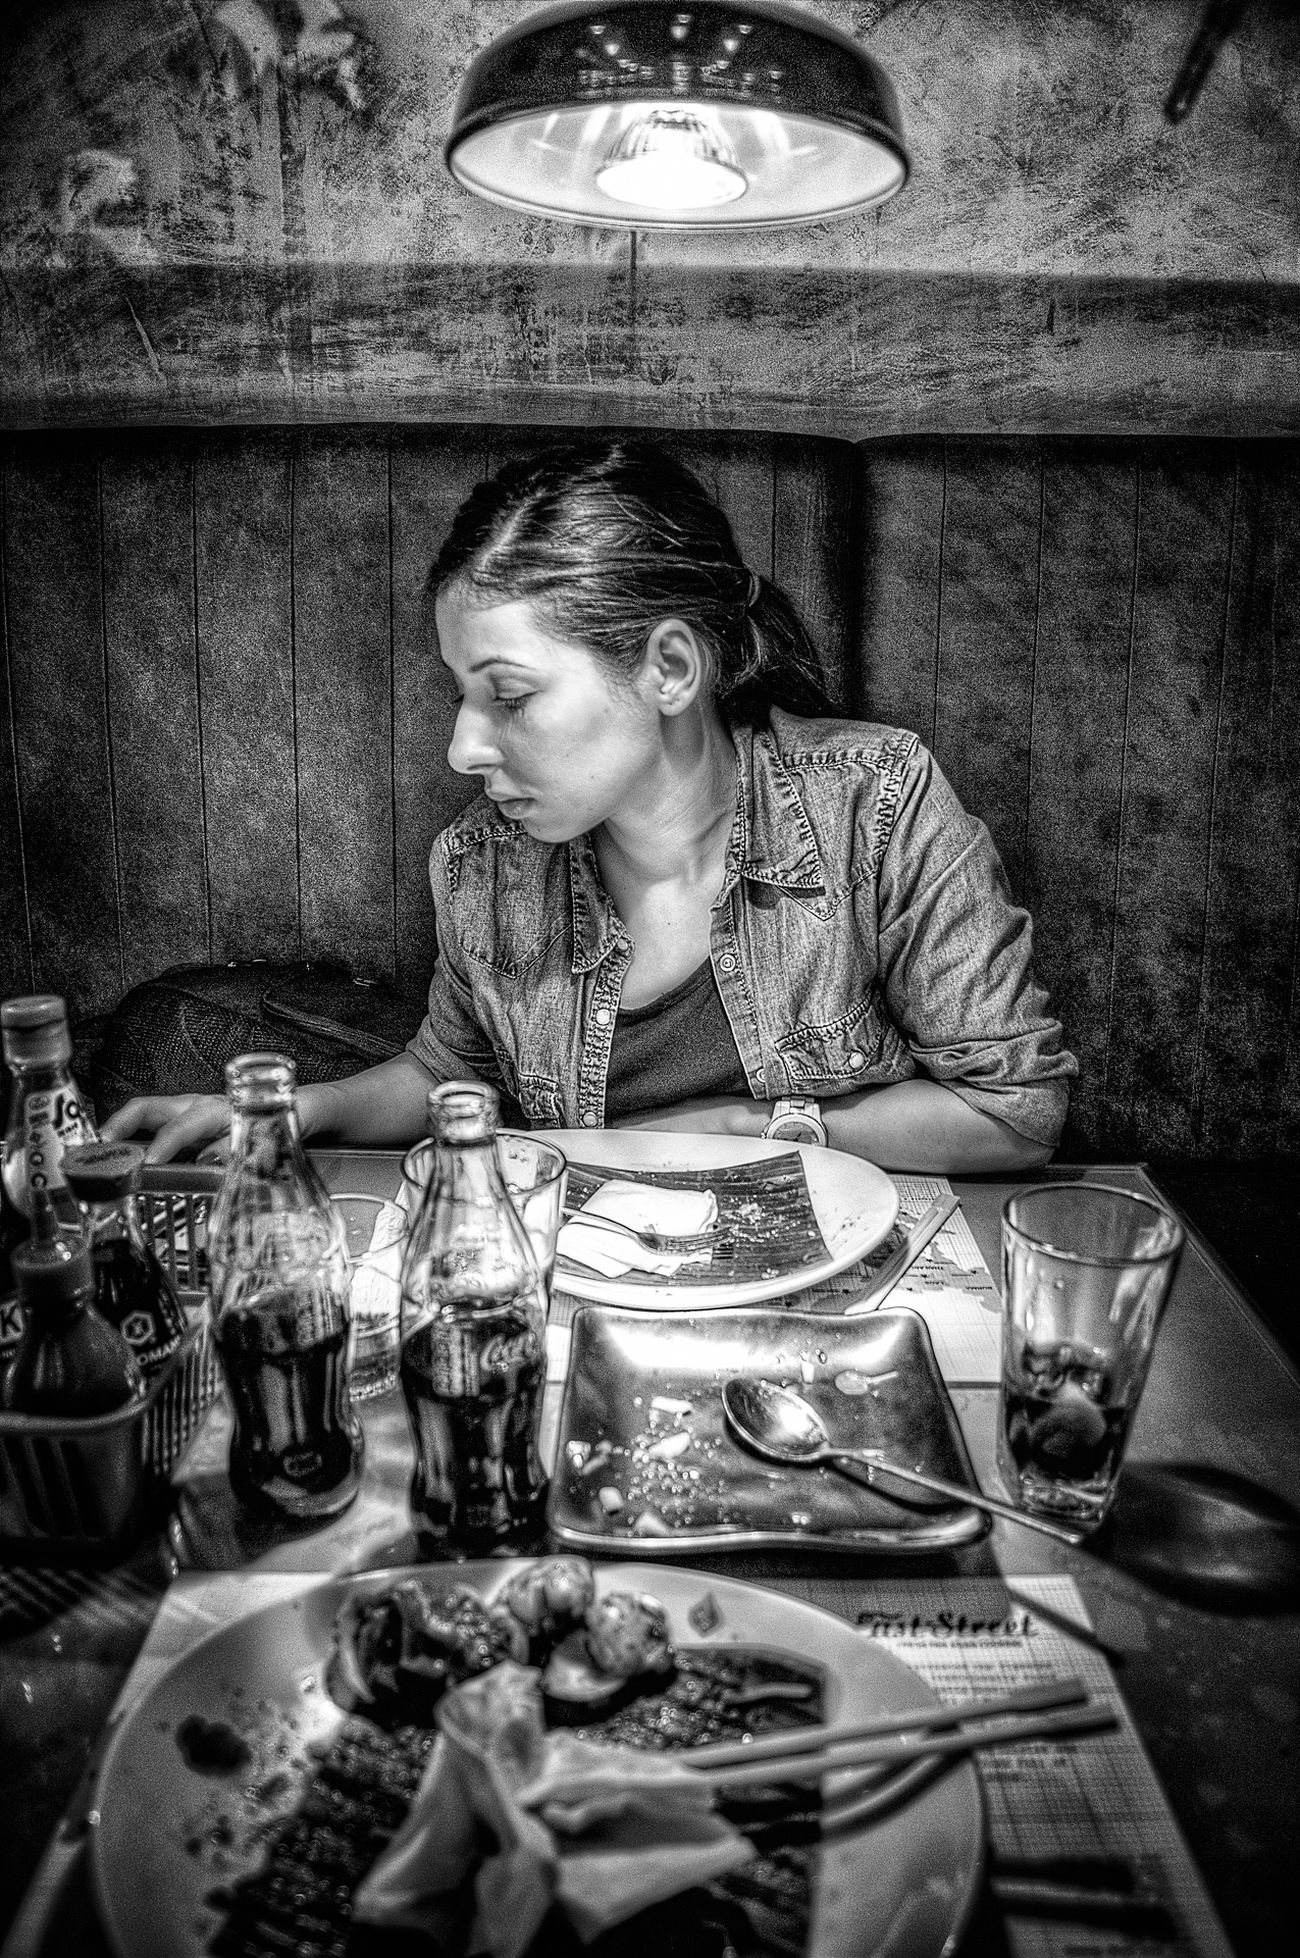 Black & White Blackandwhite Candid Candid Portraits Close-up Dinner Focus On Foreground Indoors  Lamp Light And Shadow Marcokleinphotography One Person Table Woman The Portraitist - 2016 EyeEm Awards